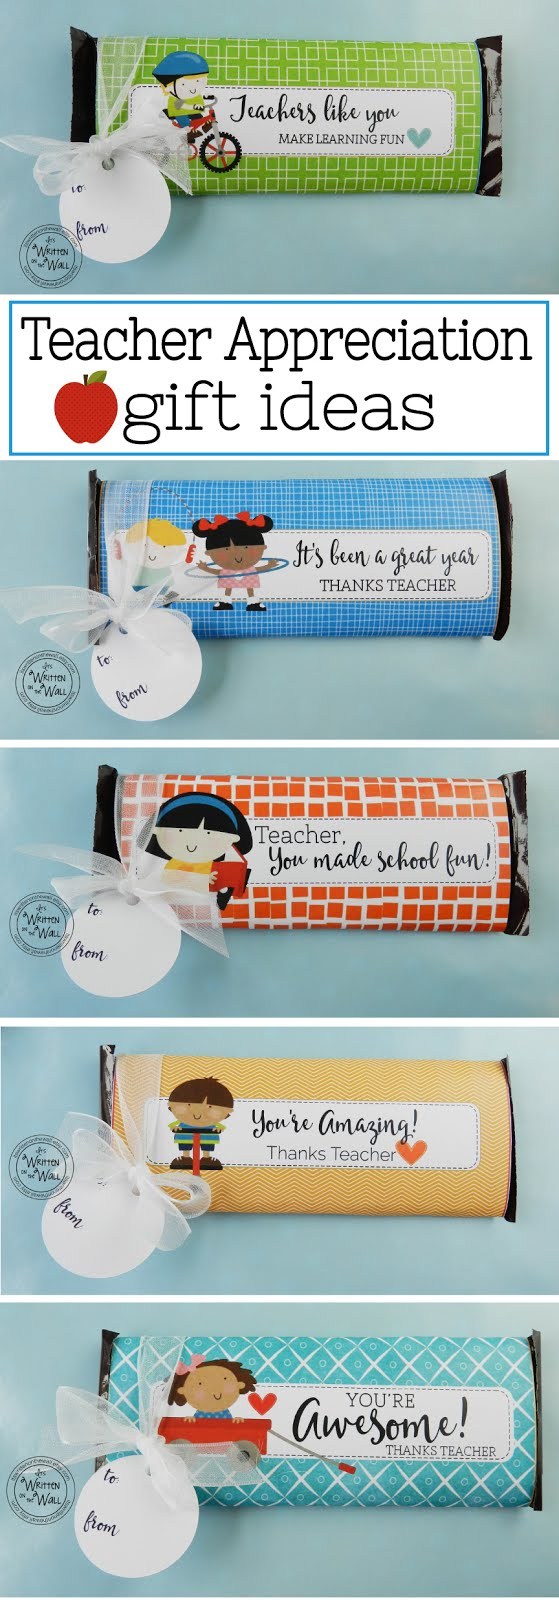 Have you got your Teacher Appreciation gift yet?